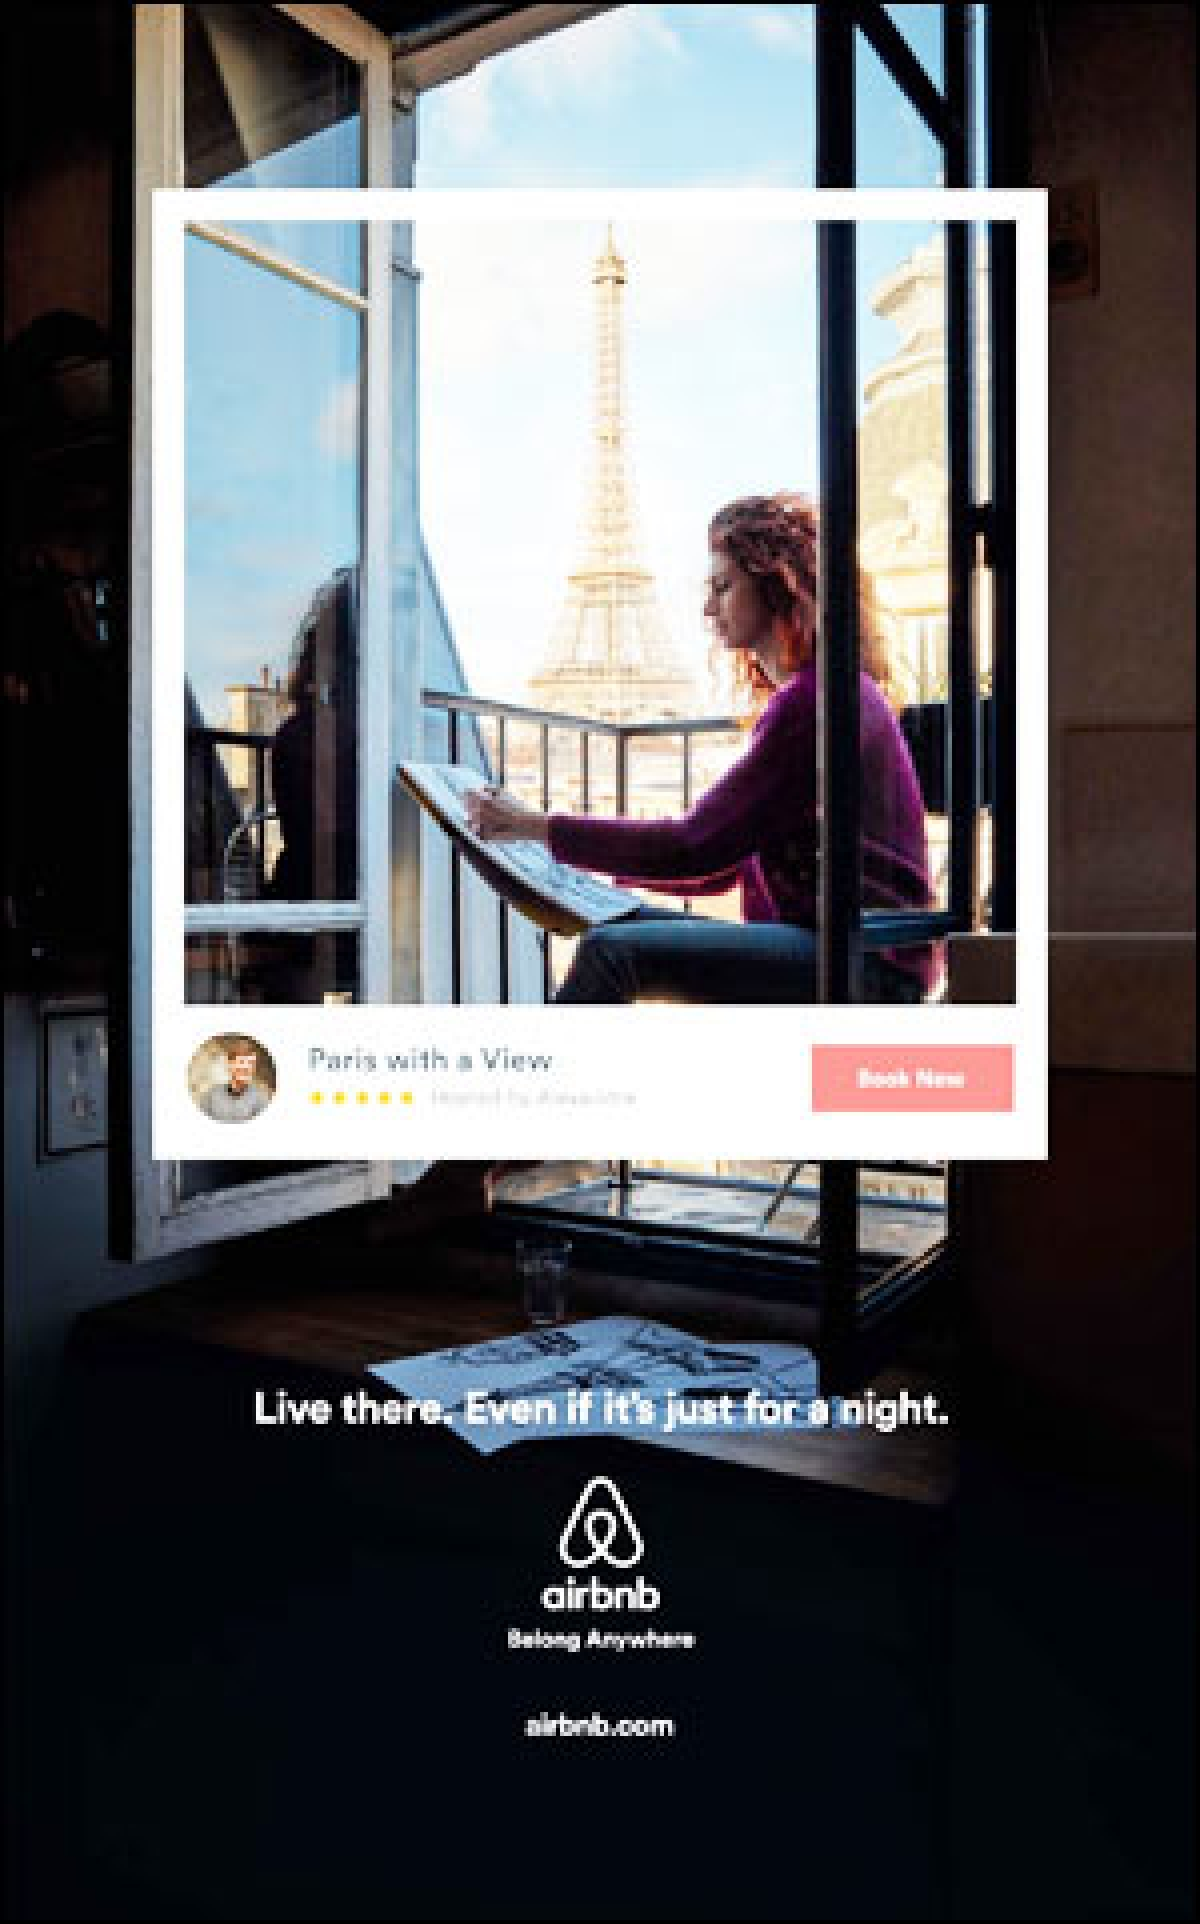 """""""Almost half a million Indians have already tried Airbnb"""": Amanpreet Bajaj, country manager, India, Airbnb"""